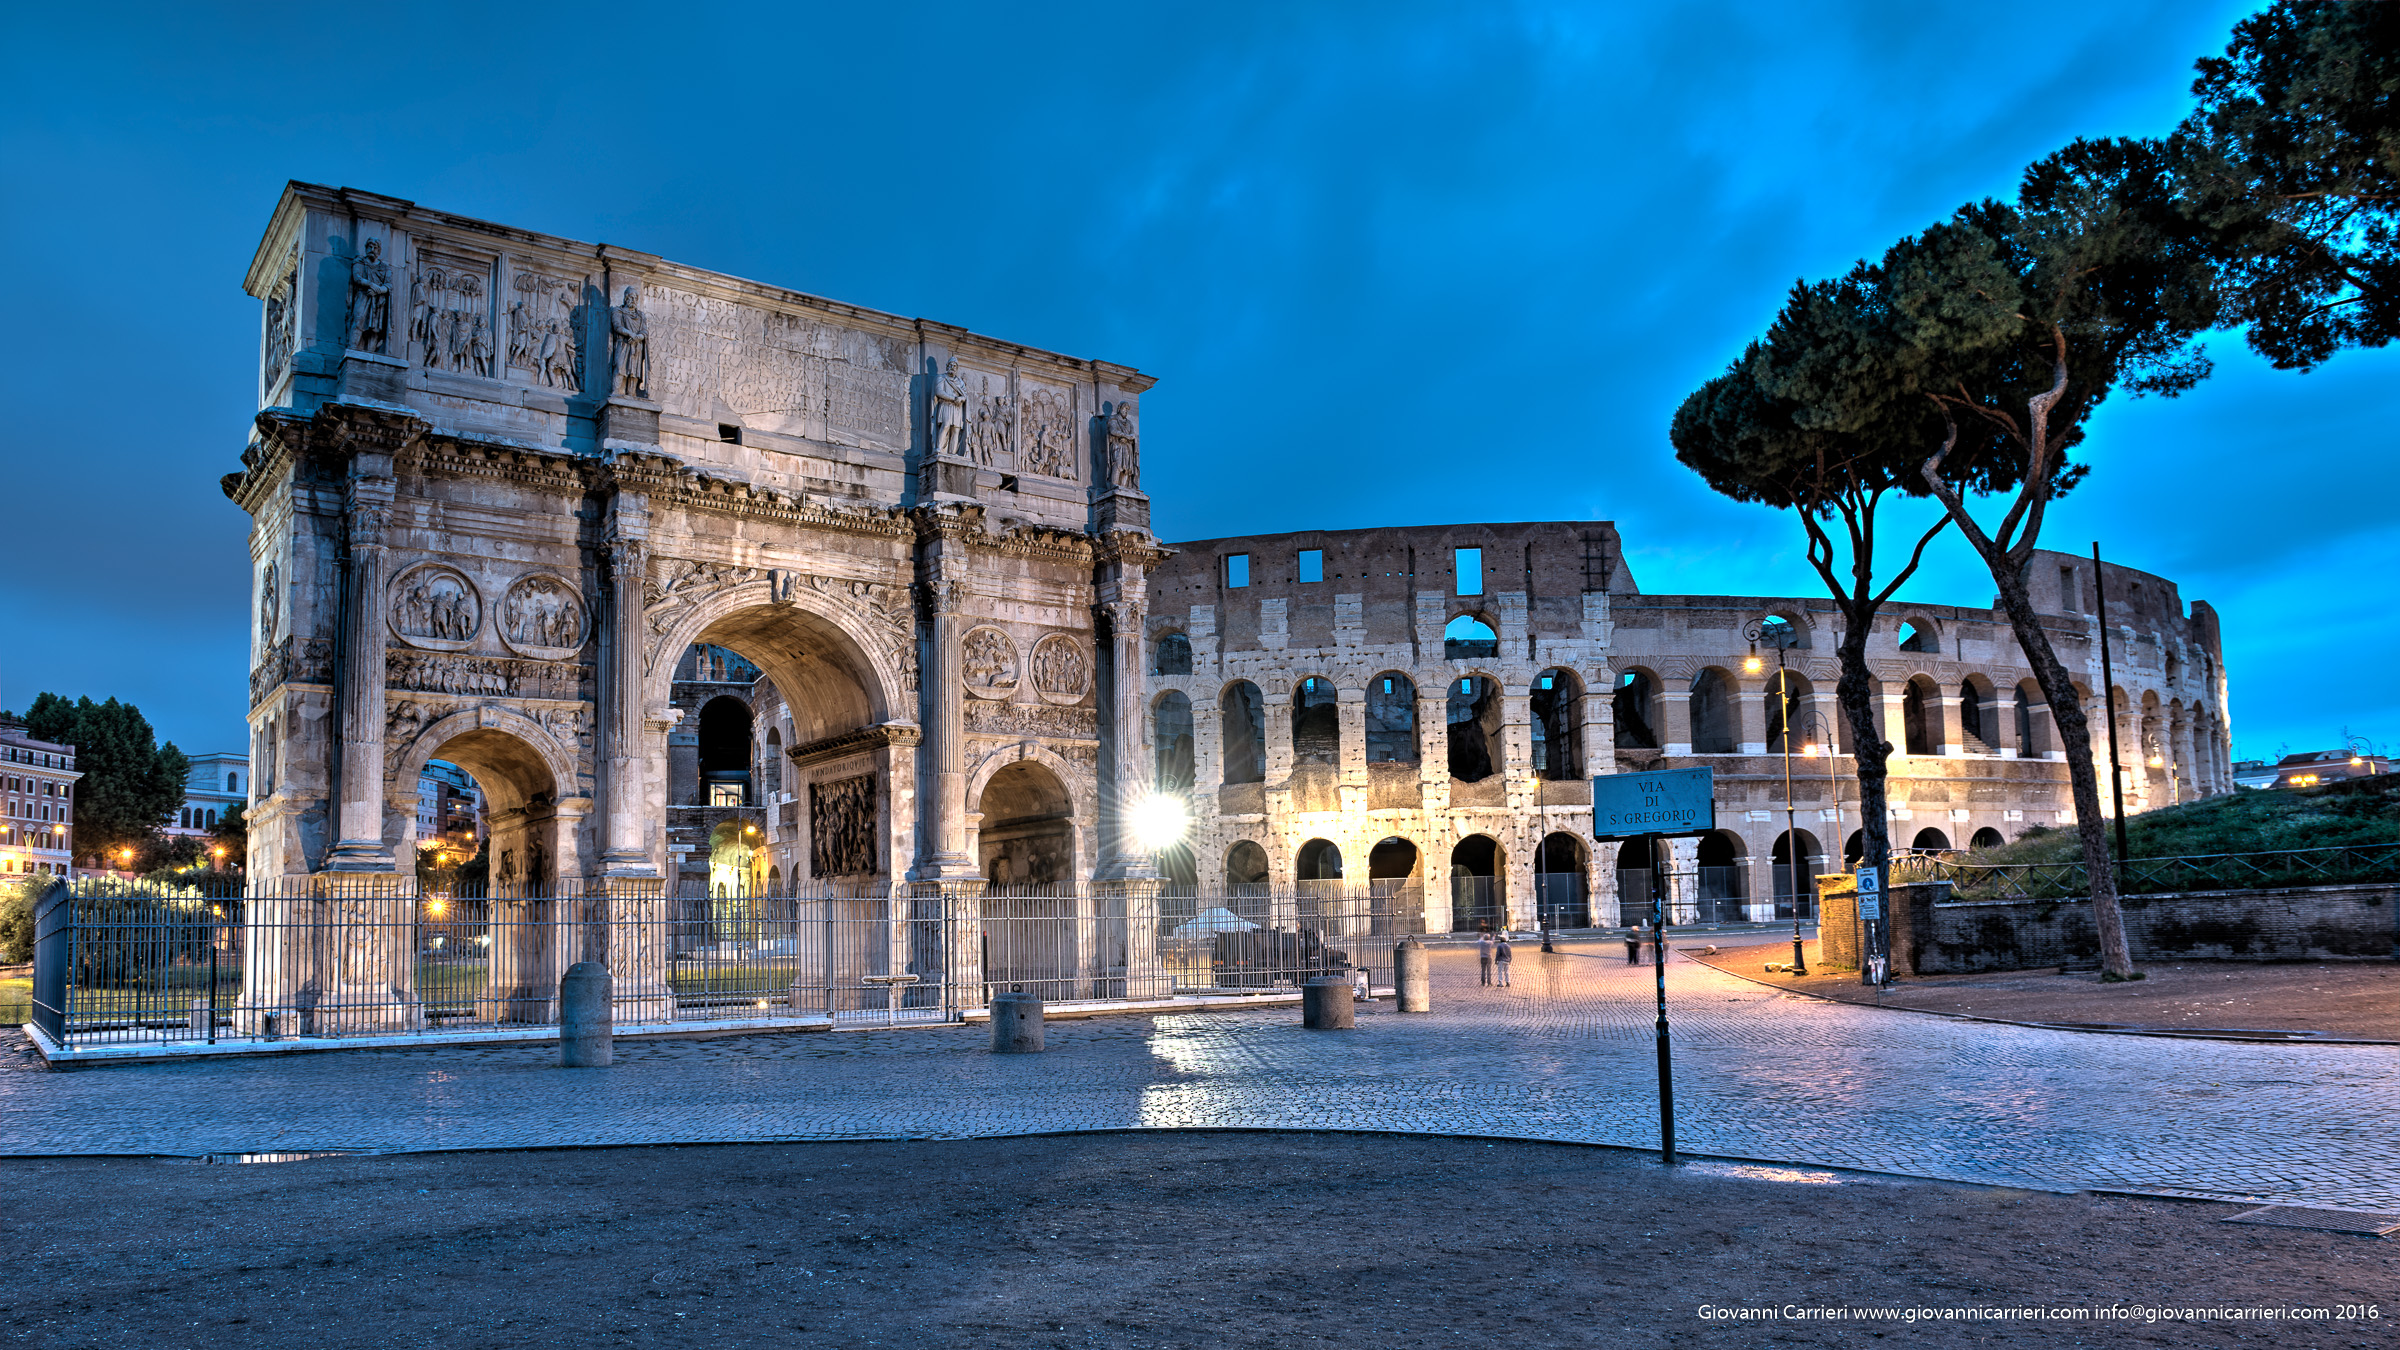 Colosseum and the Arch of Constantine at dusk